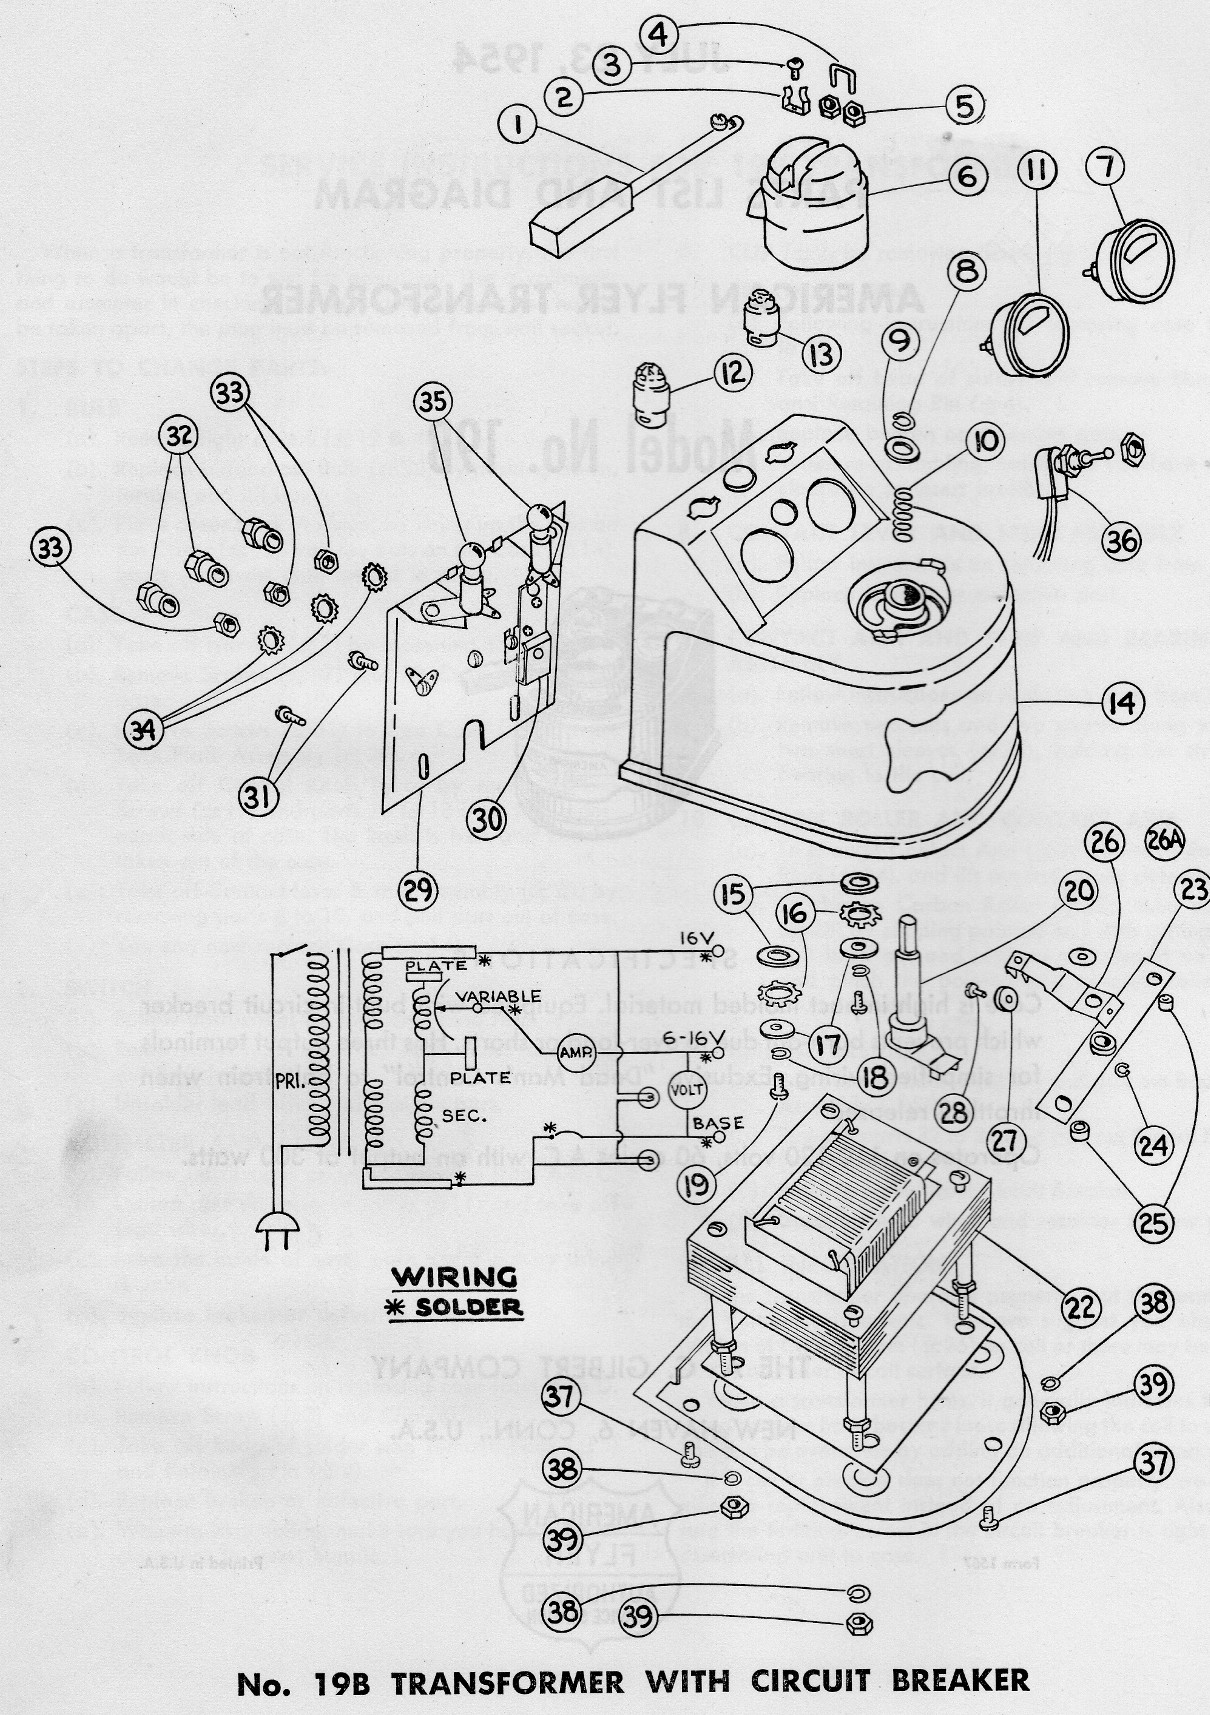 F1567 19B Transformer Service Manual Lo Res 002 e1394707968561 american flyer transformer 19b parts list & diagram traindr american flyer wiring diagrams at nearapp.co